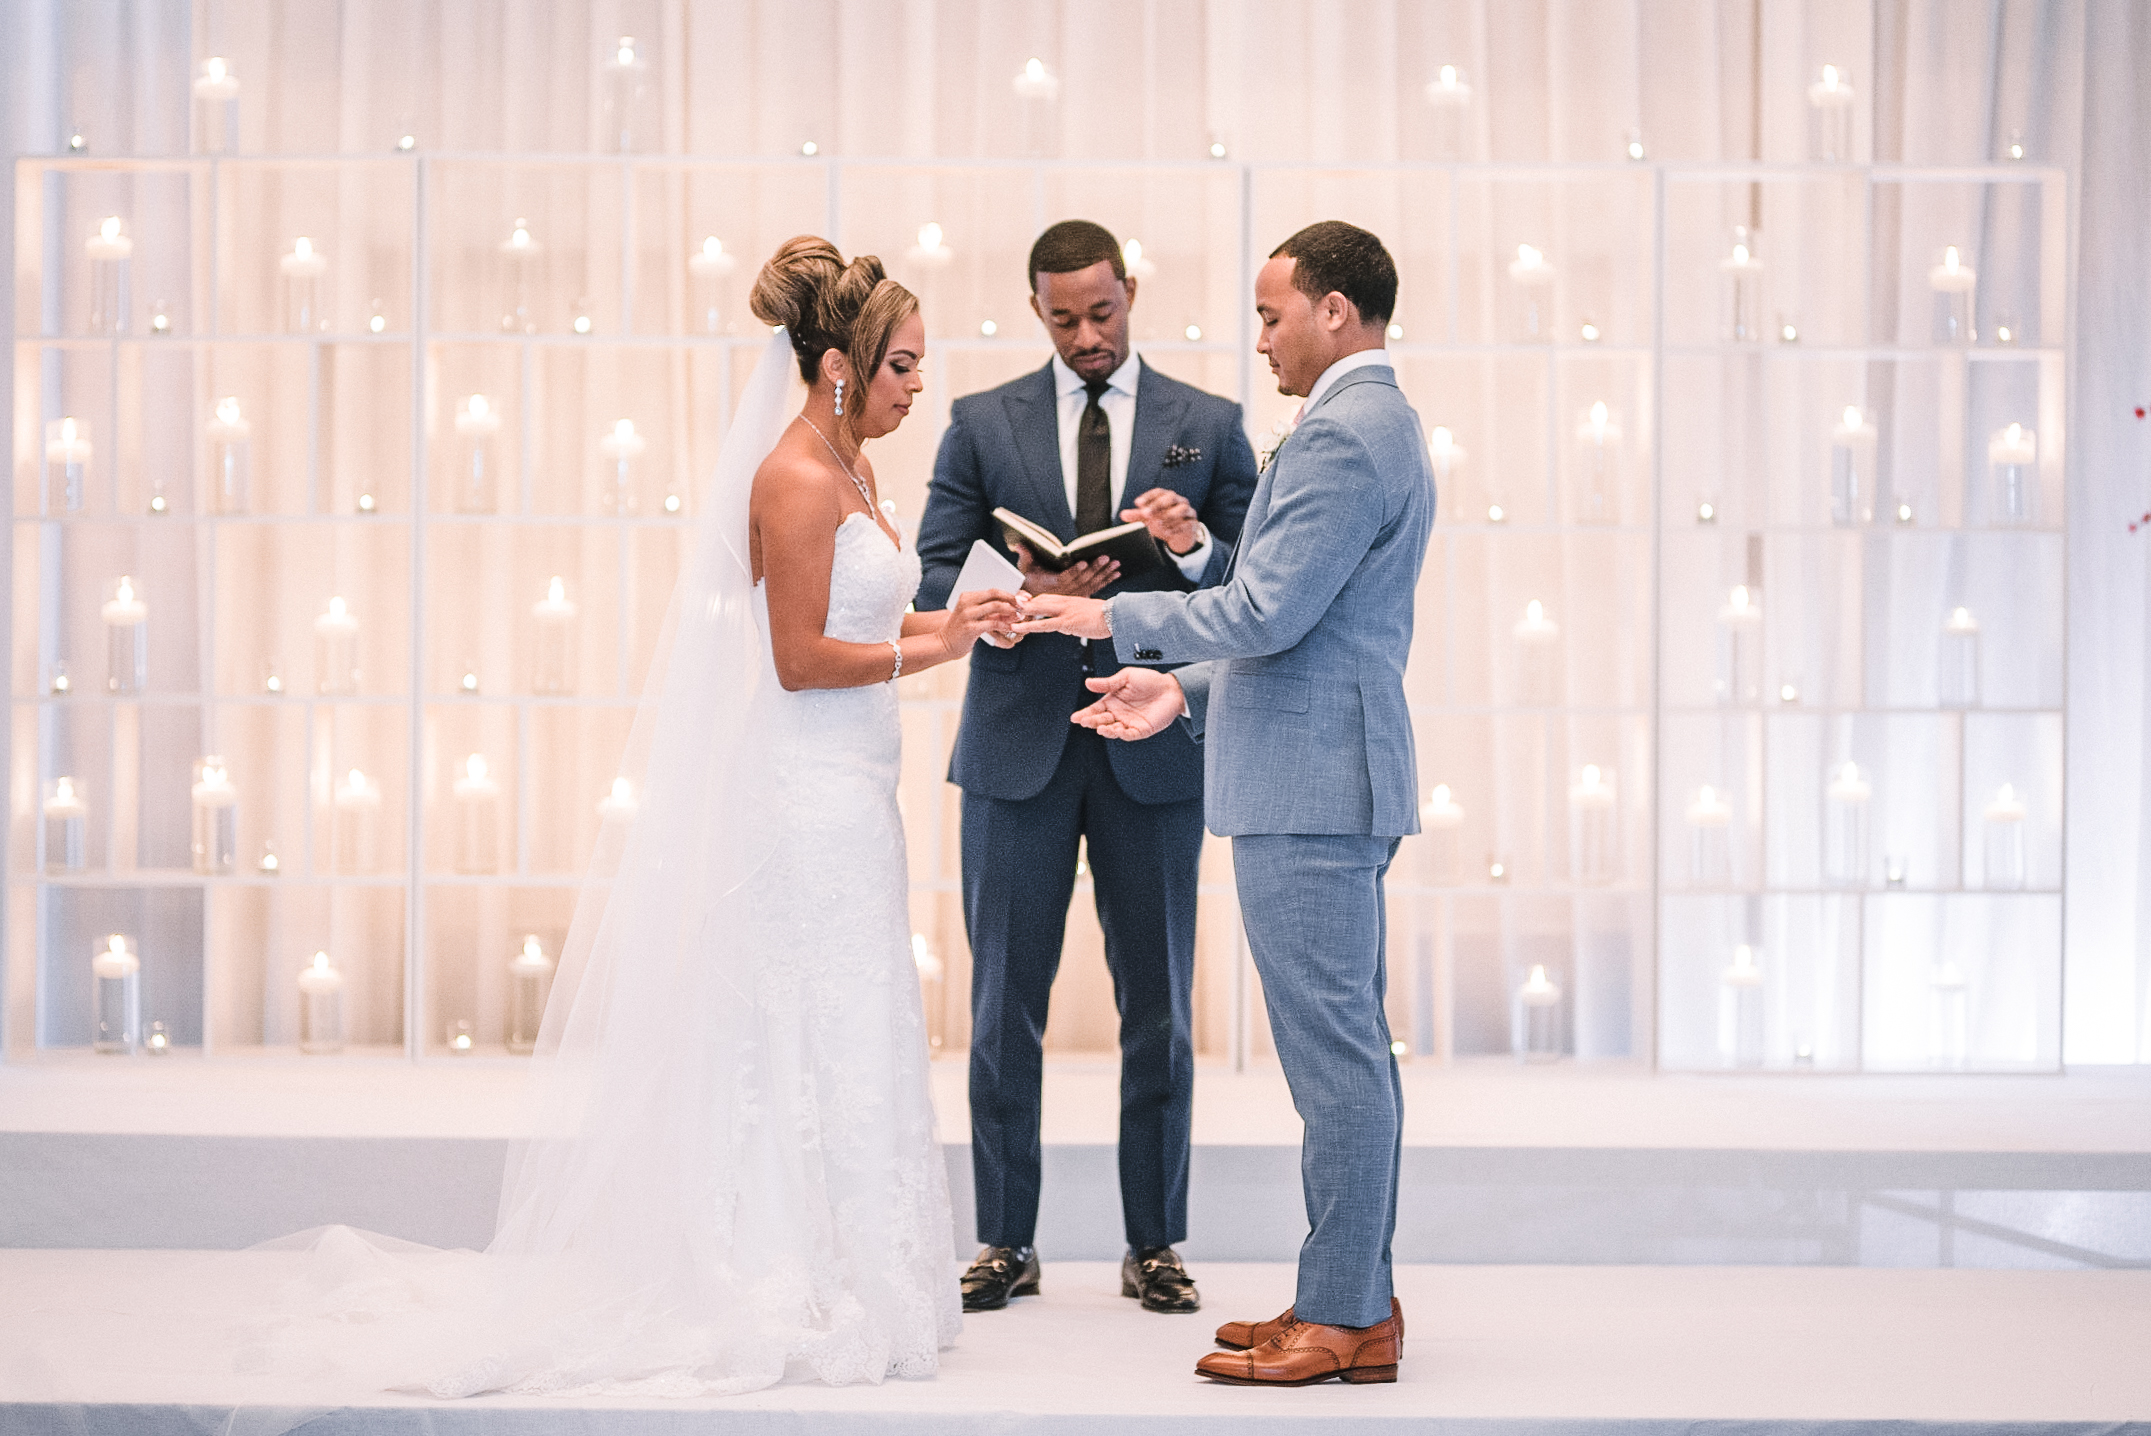 bride and groom exchanging rings at The Park Hyatt Hotel in Washington DC